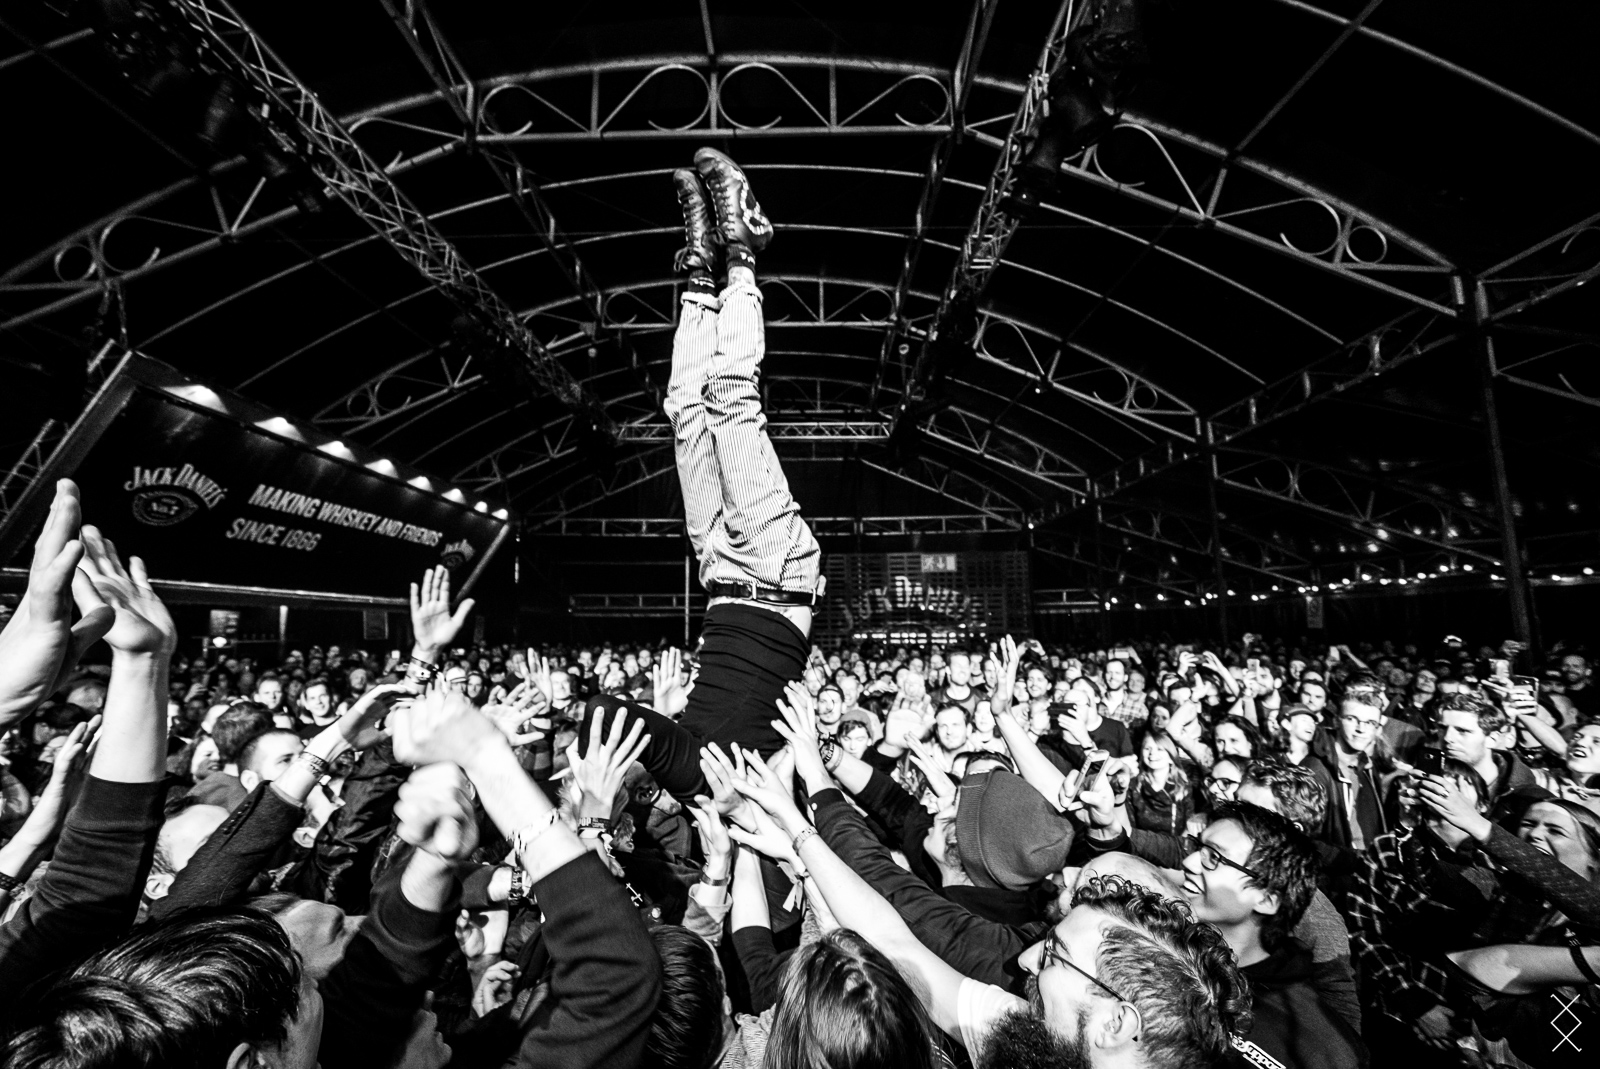 On stage photography: Frank Carter and the Rattlesnakes 2018